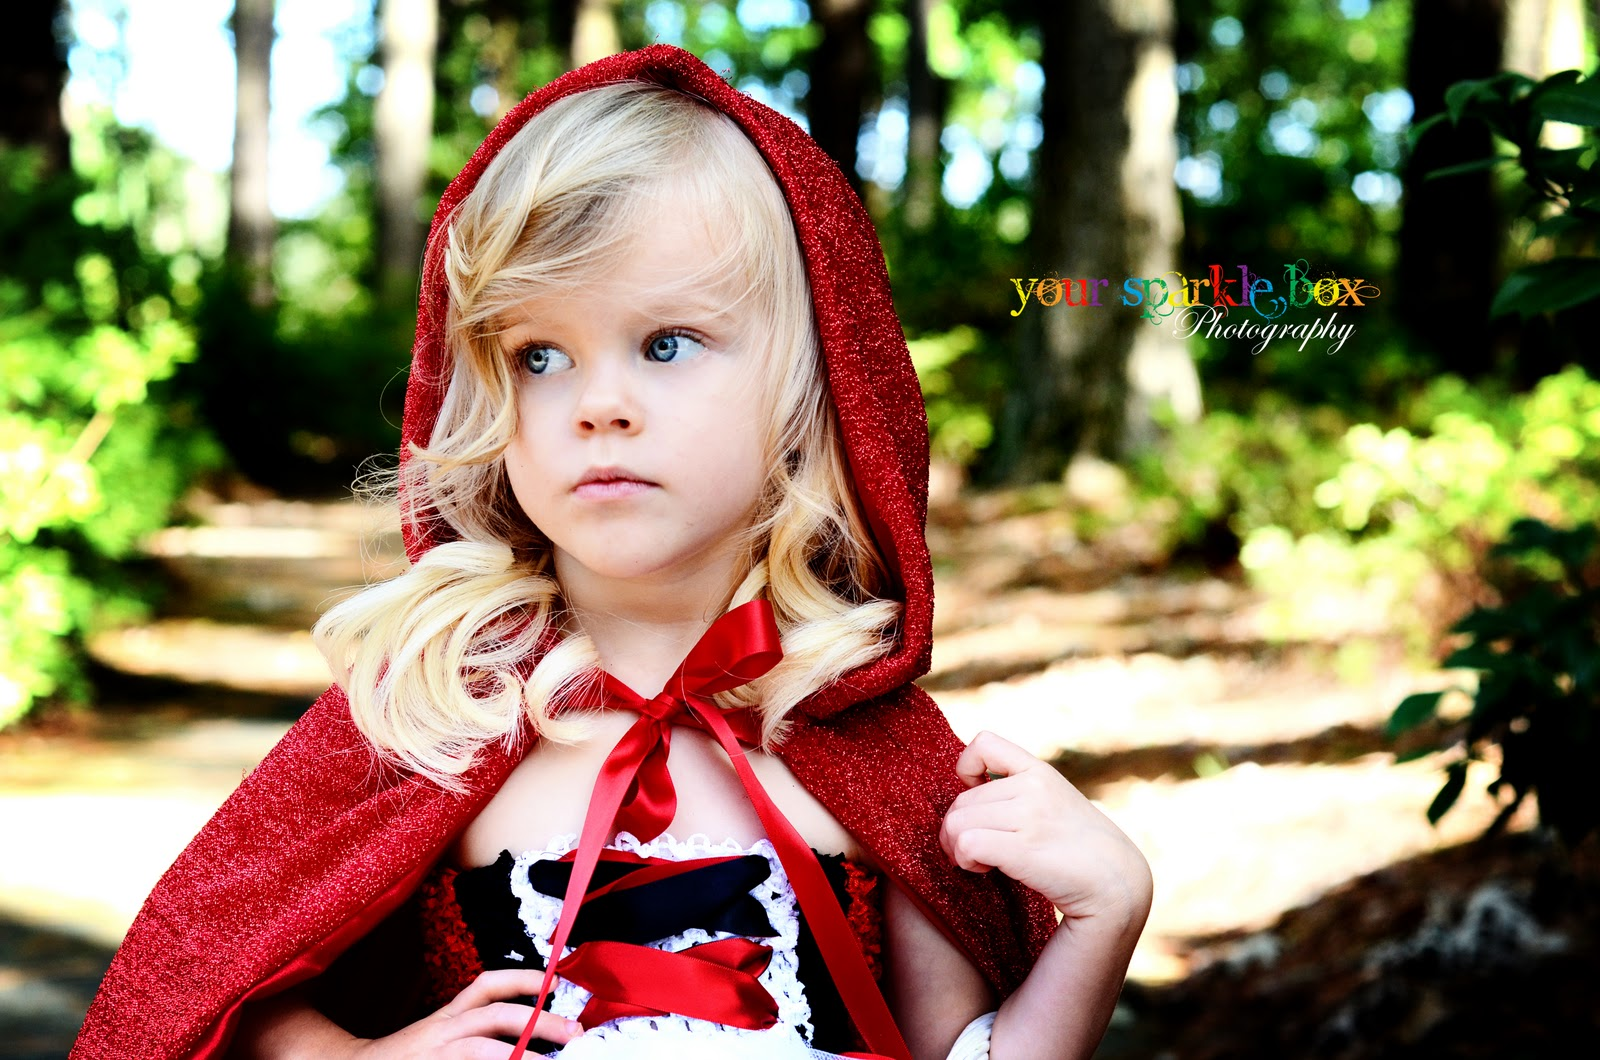 Your Sparkle Box Photography: What Big Eyes You Have